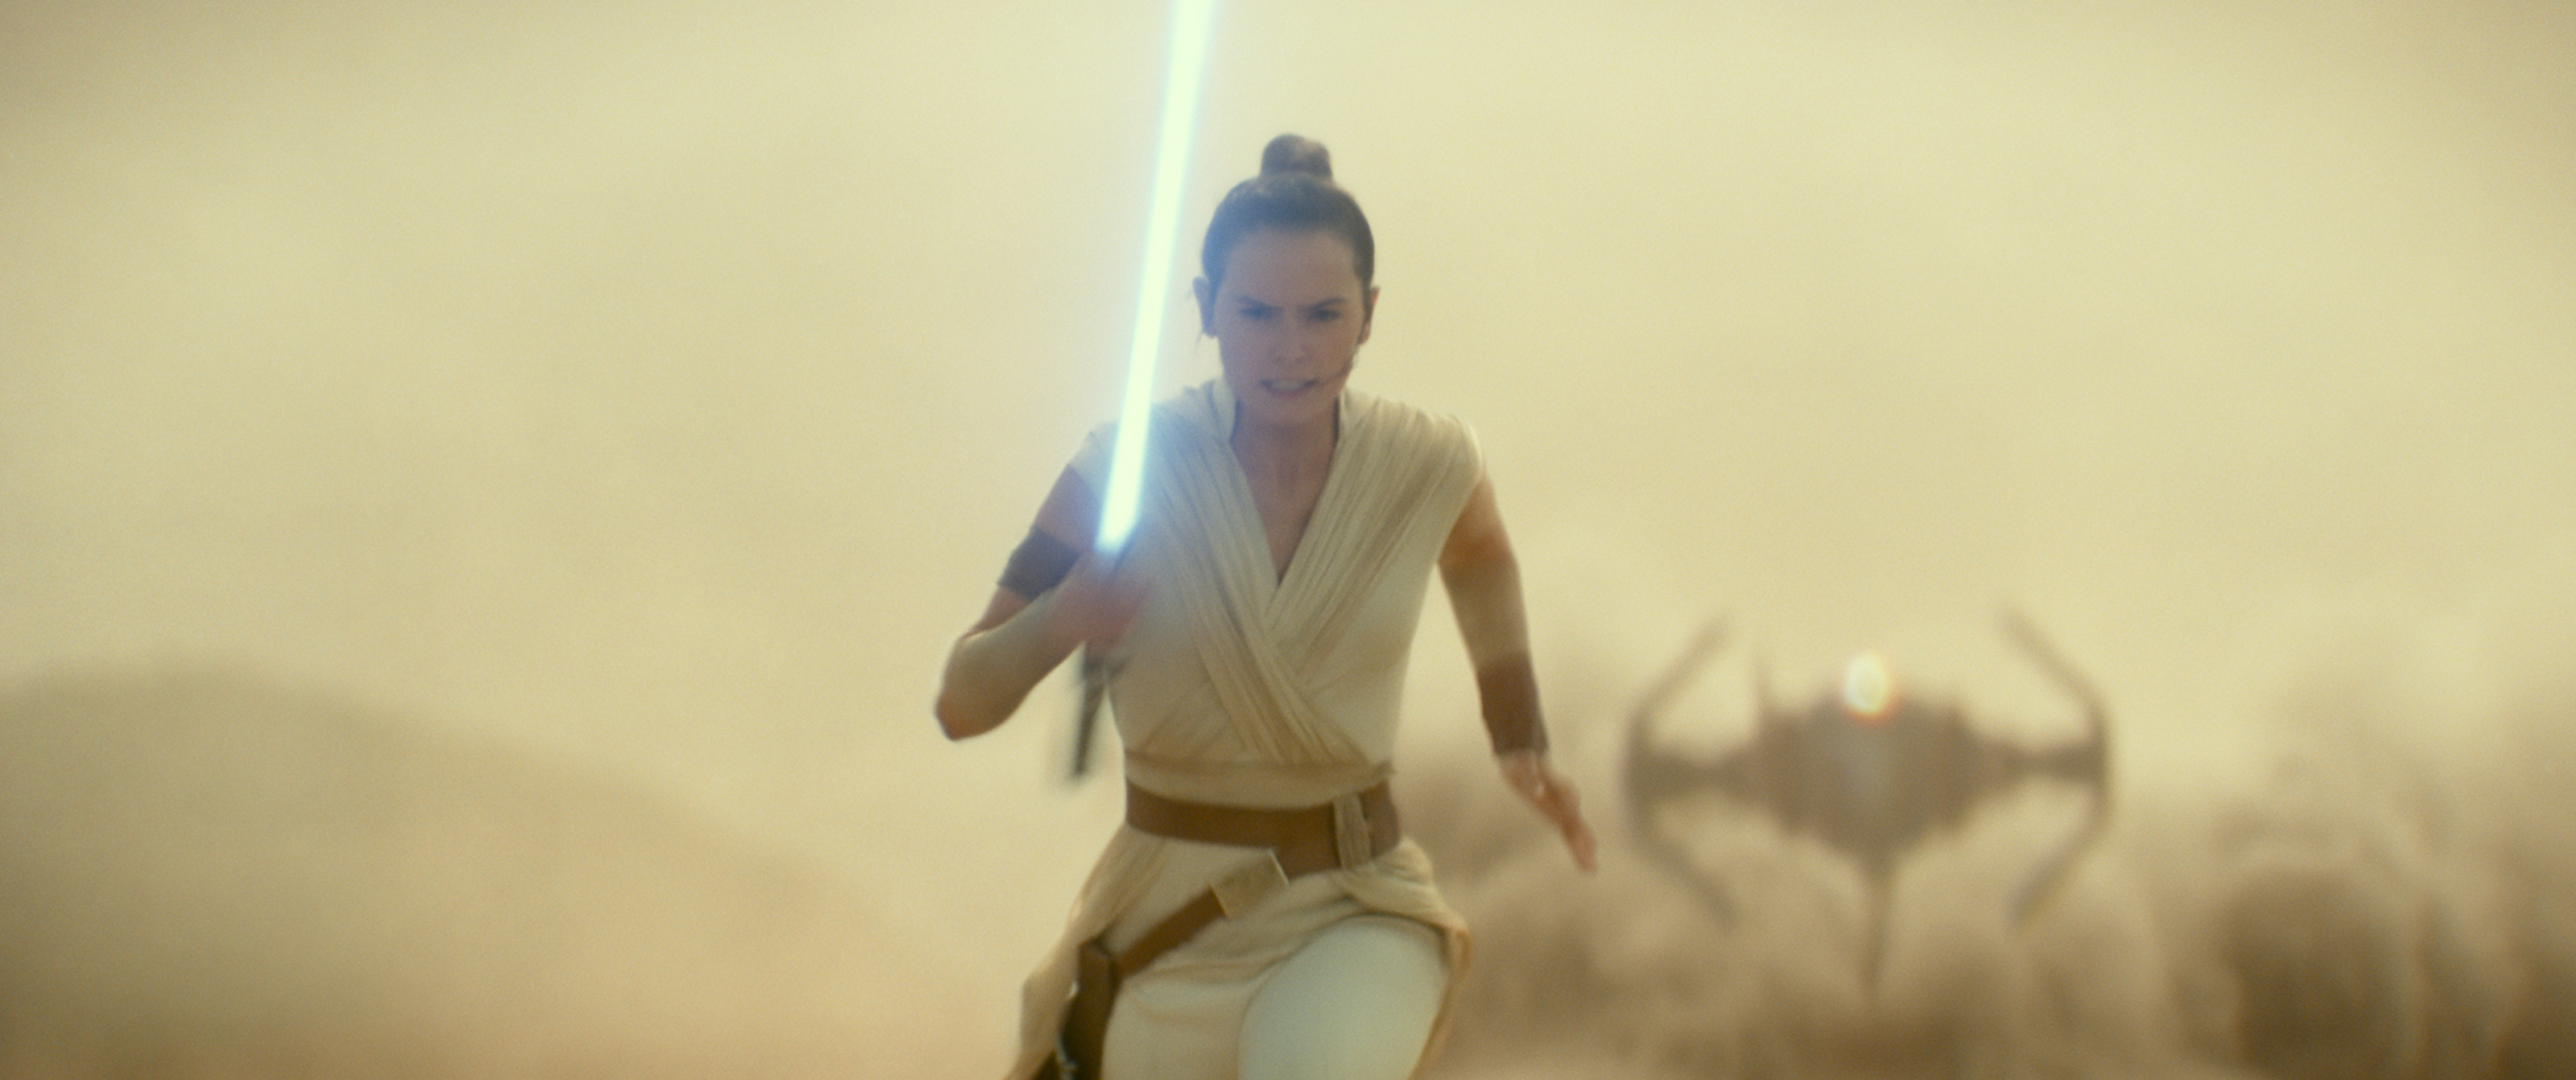 Star Wars The Rise Of Skywalker Is Coming To Disney Plus Later This Year